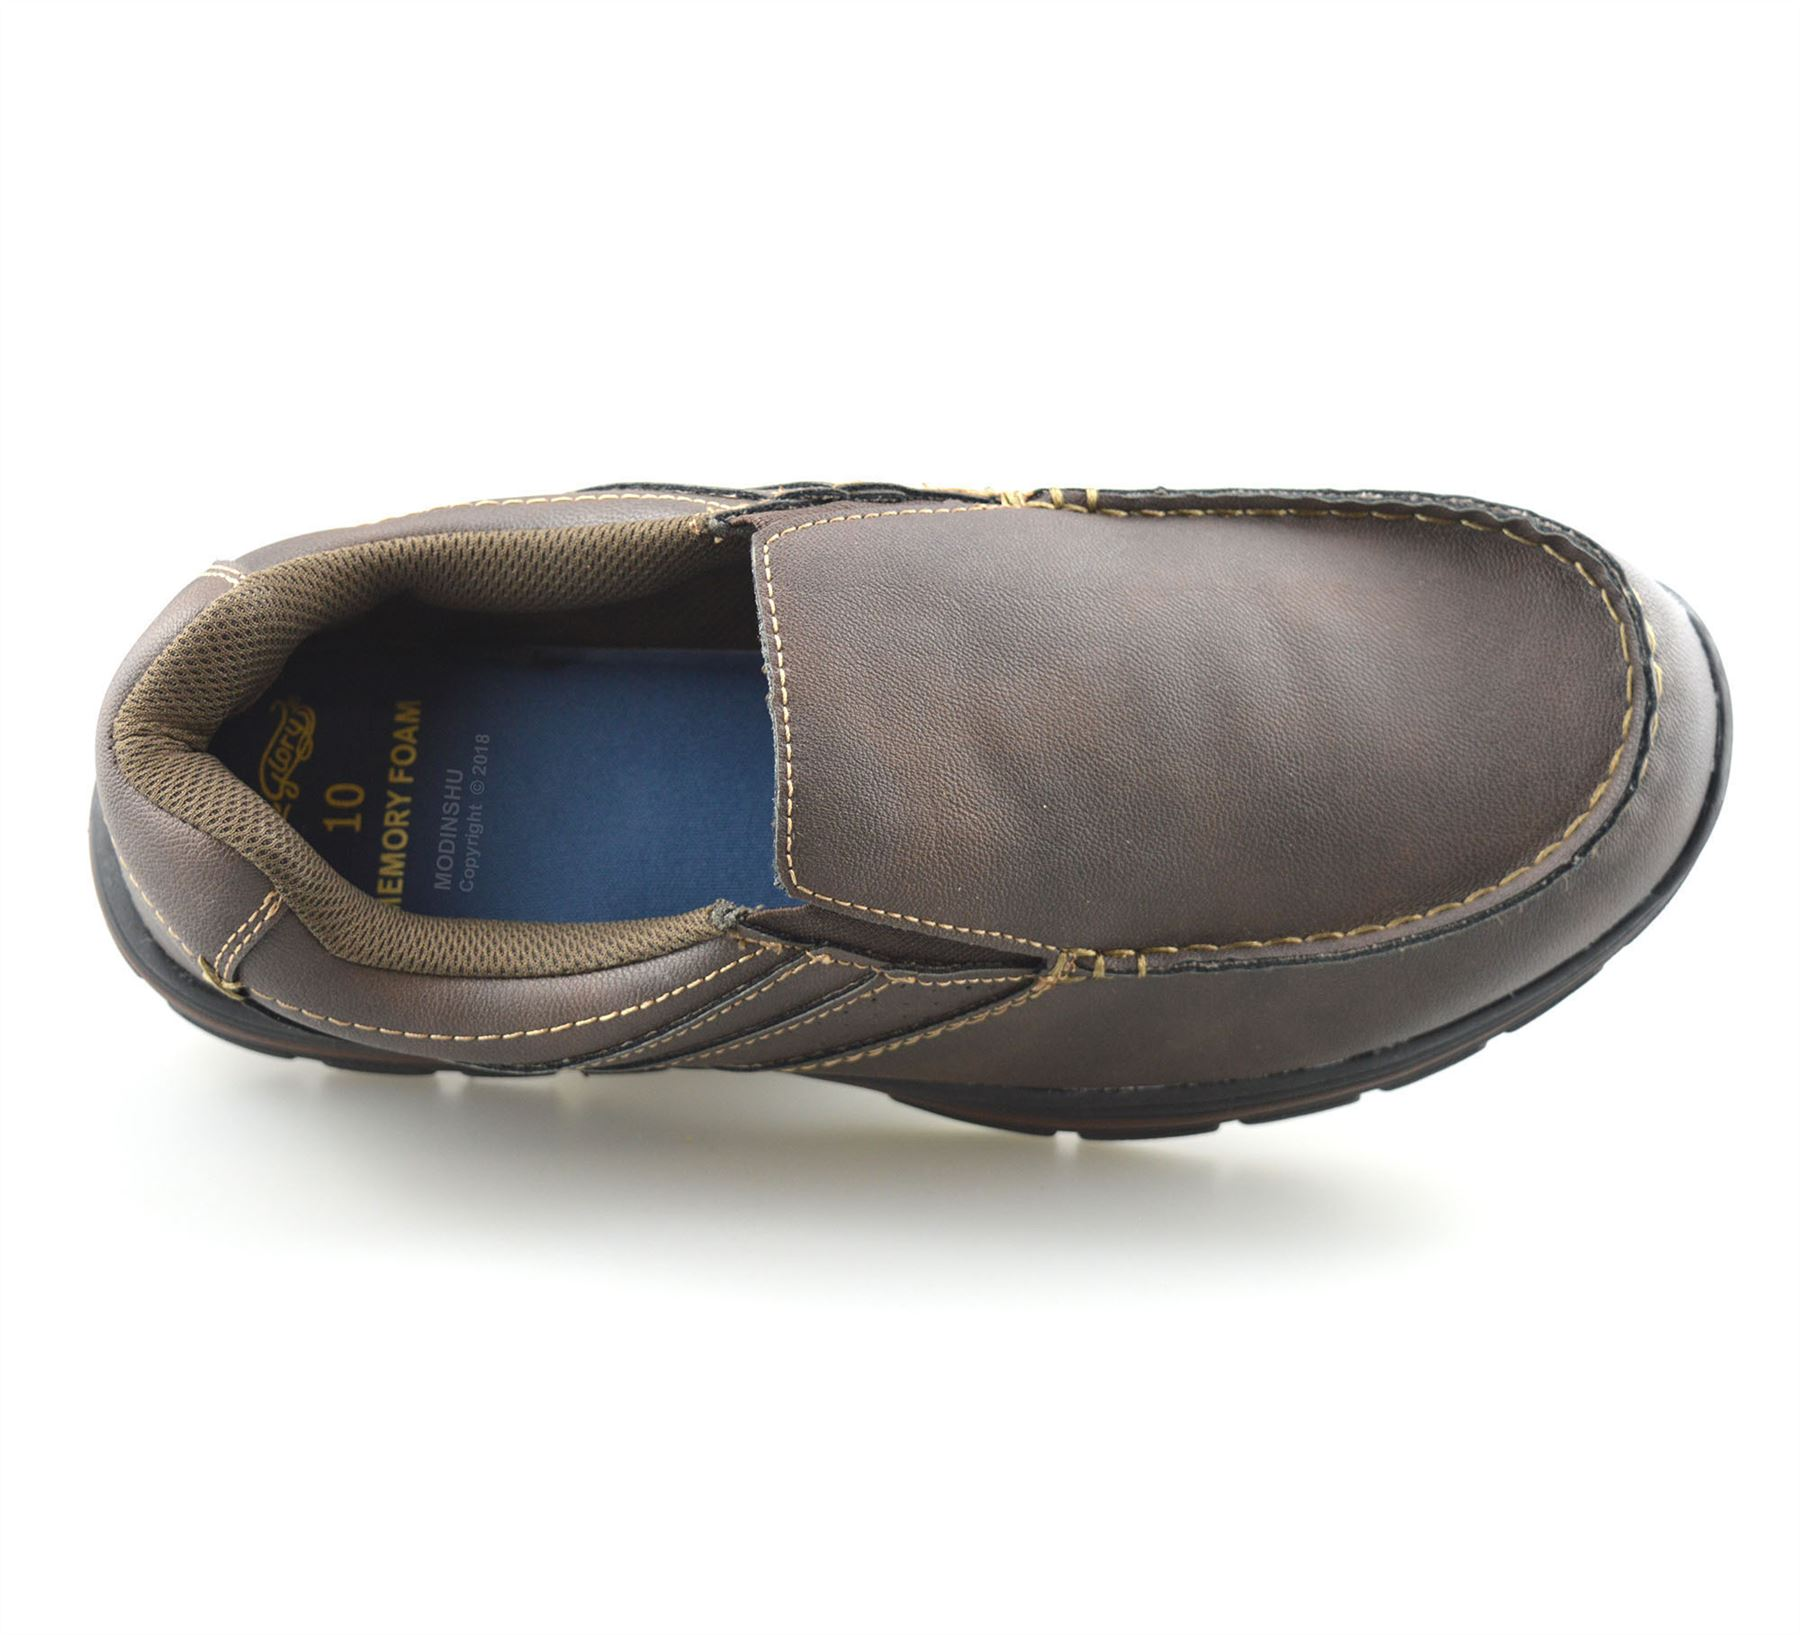 Mens-Casual-Memory-Foam-Slip-On-Walking-Moccasin-Loafers-Driving-Boat-Shoes-Size thumbnail 21